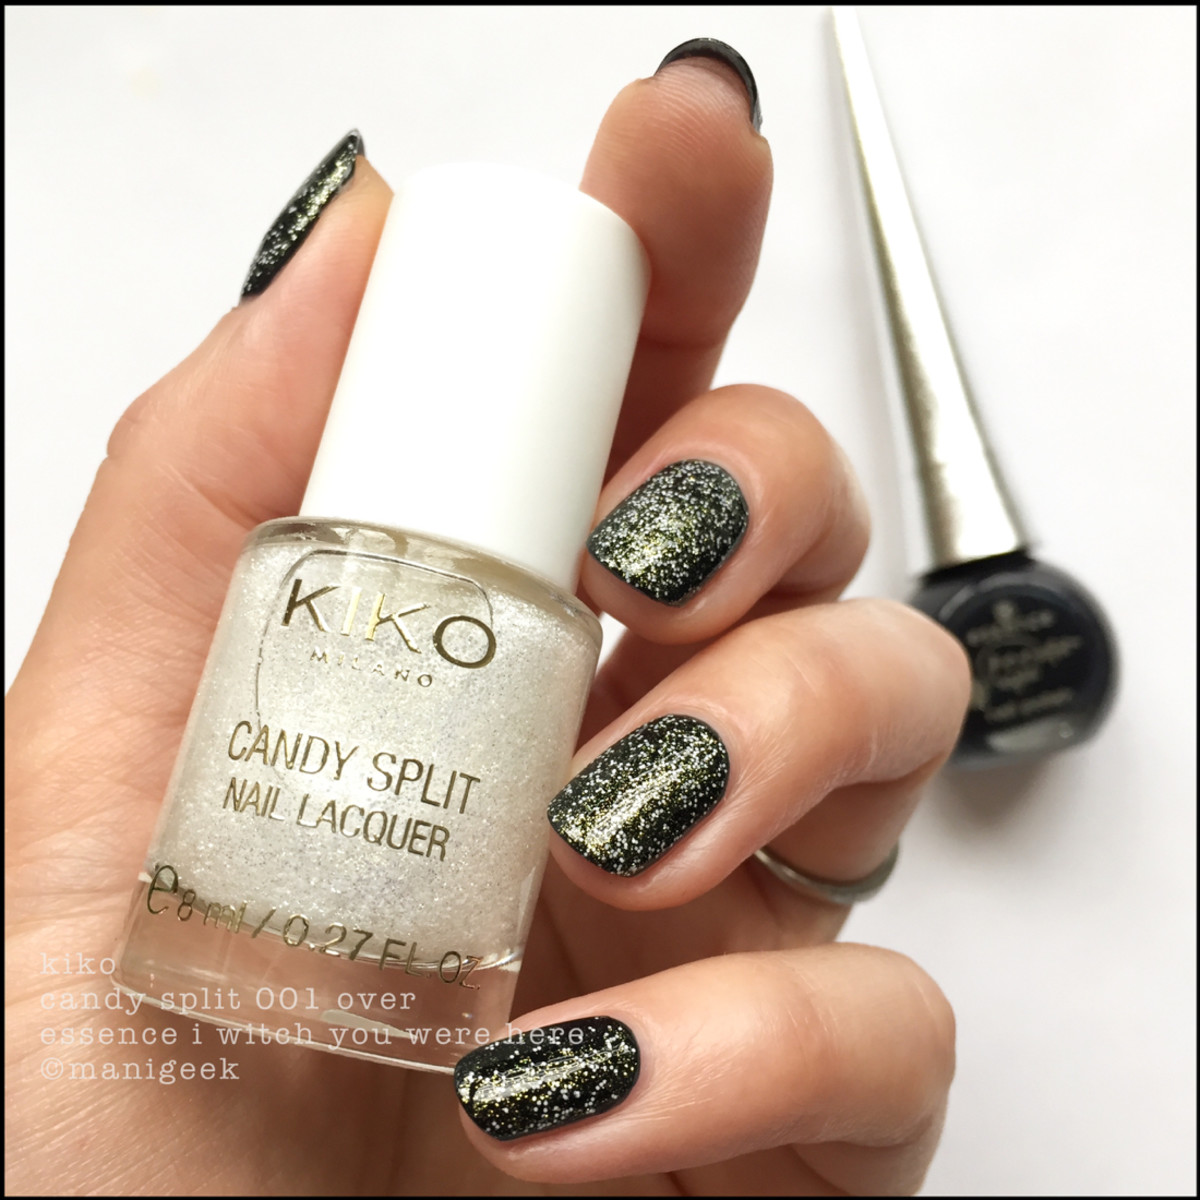 Kiko Candy Split 01 over Essence I Witch You Were Here _ Essence Bootiful Nights Collection